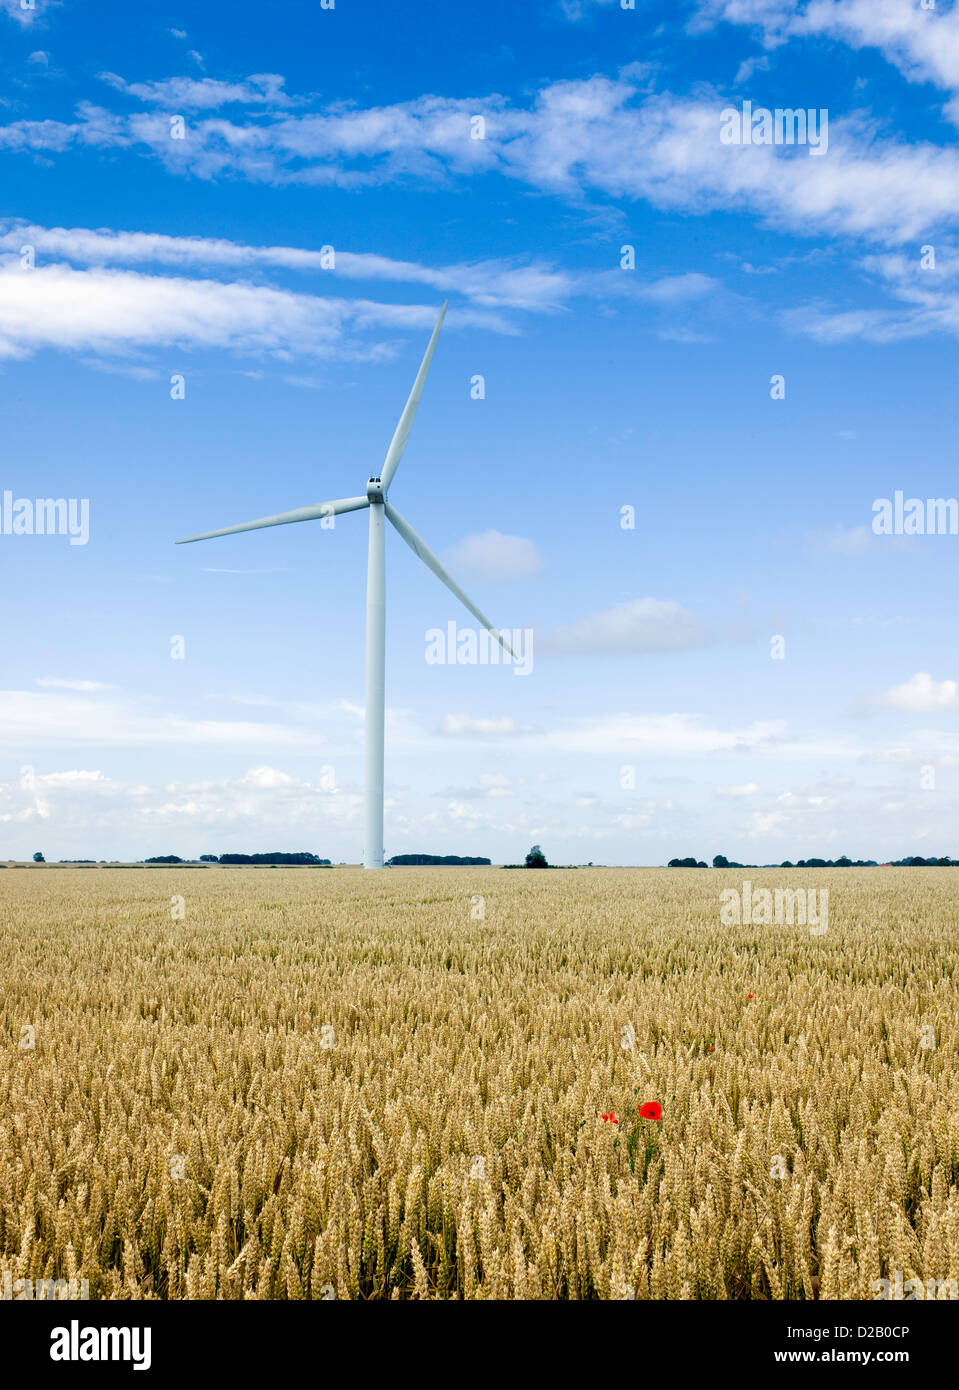 Wind turbine in a field of wheat. The shot was taken mid summer near the town of Beverley which is situated in Yorkshire, - Stock Image